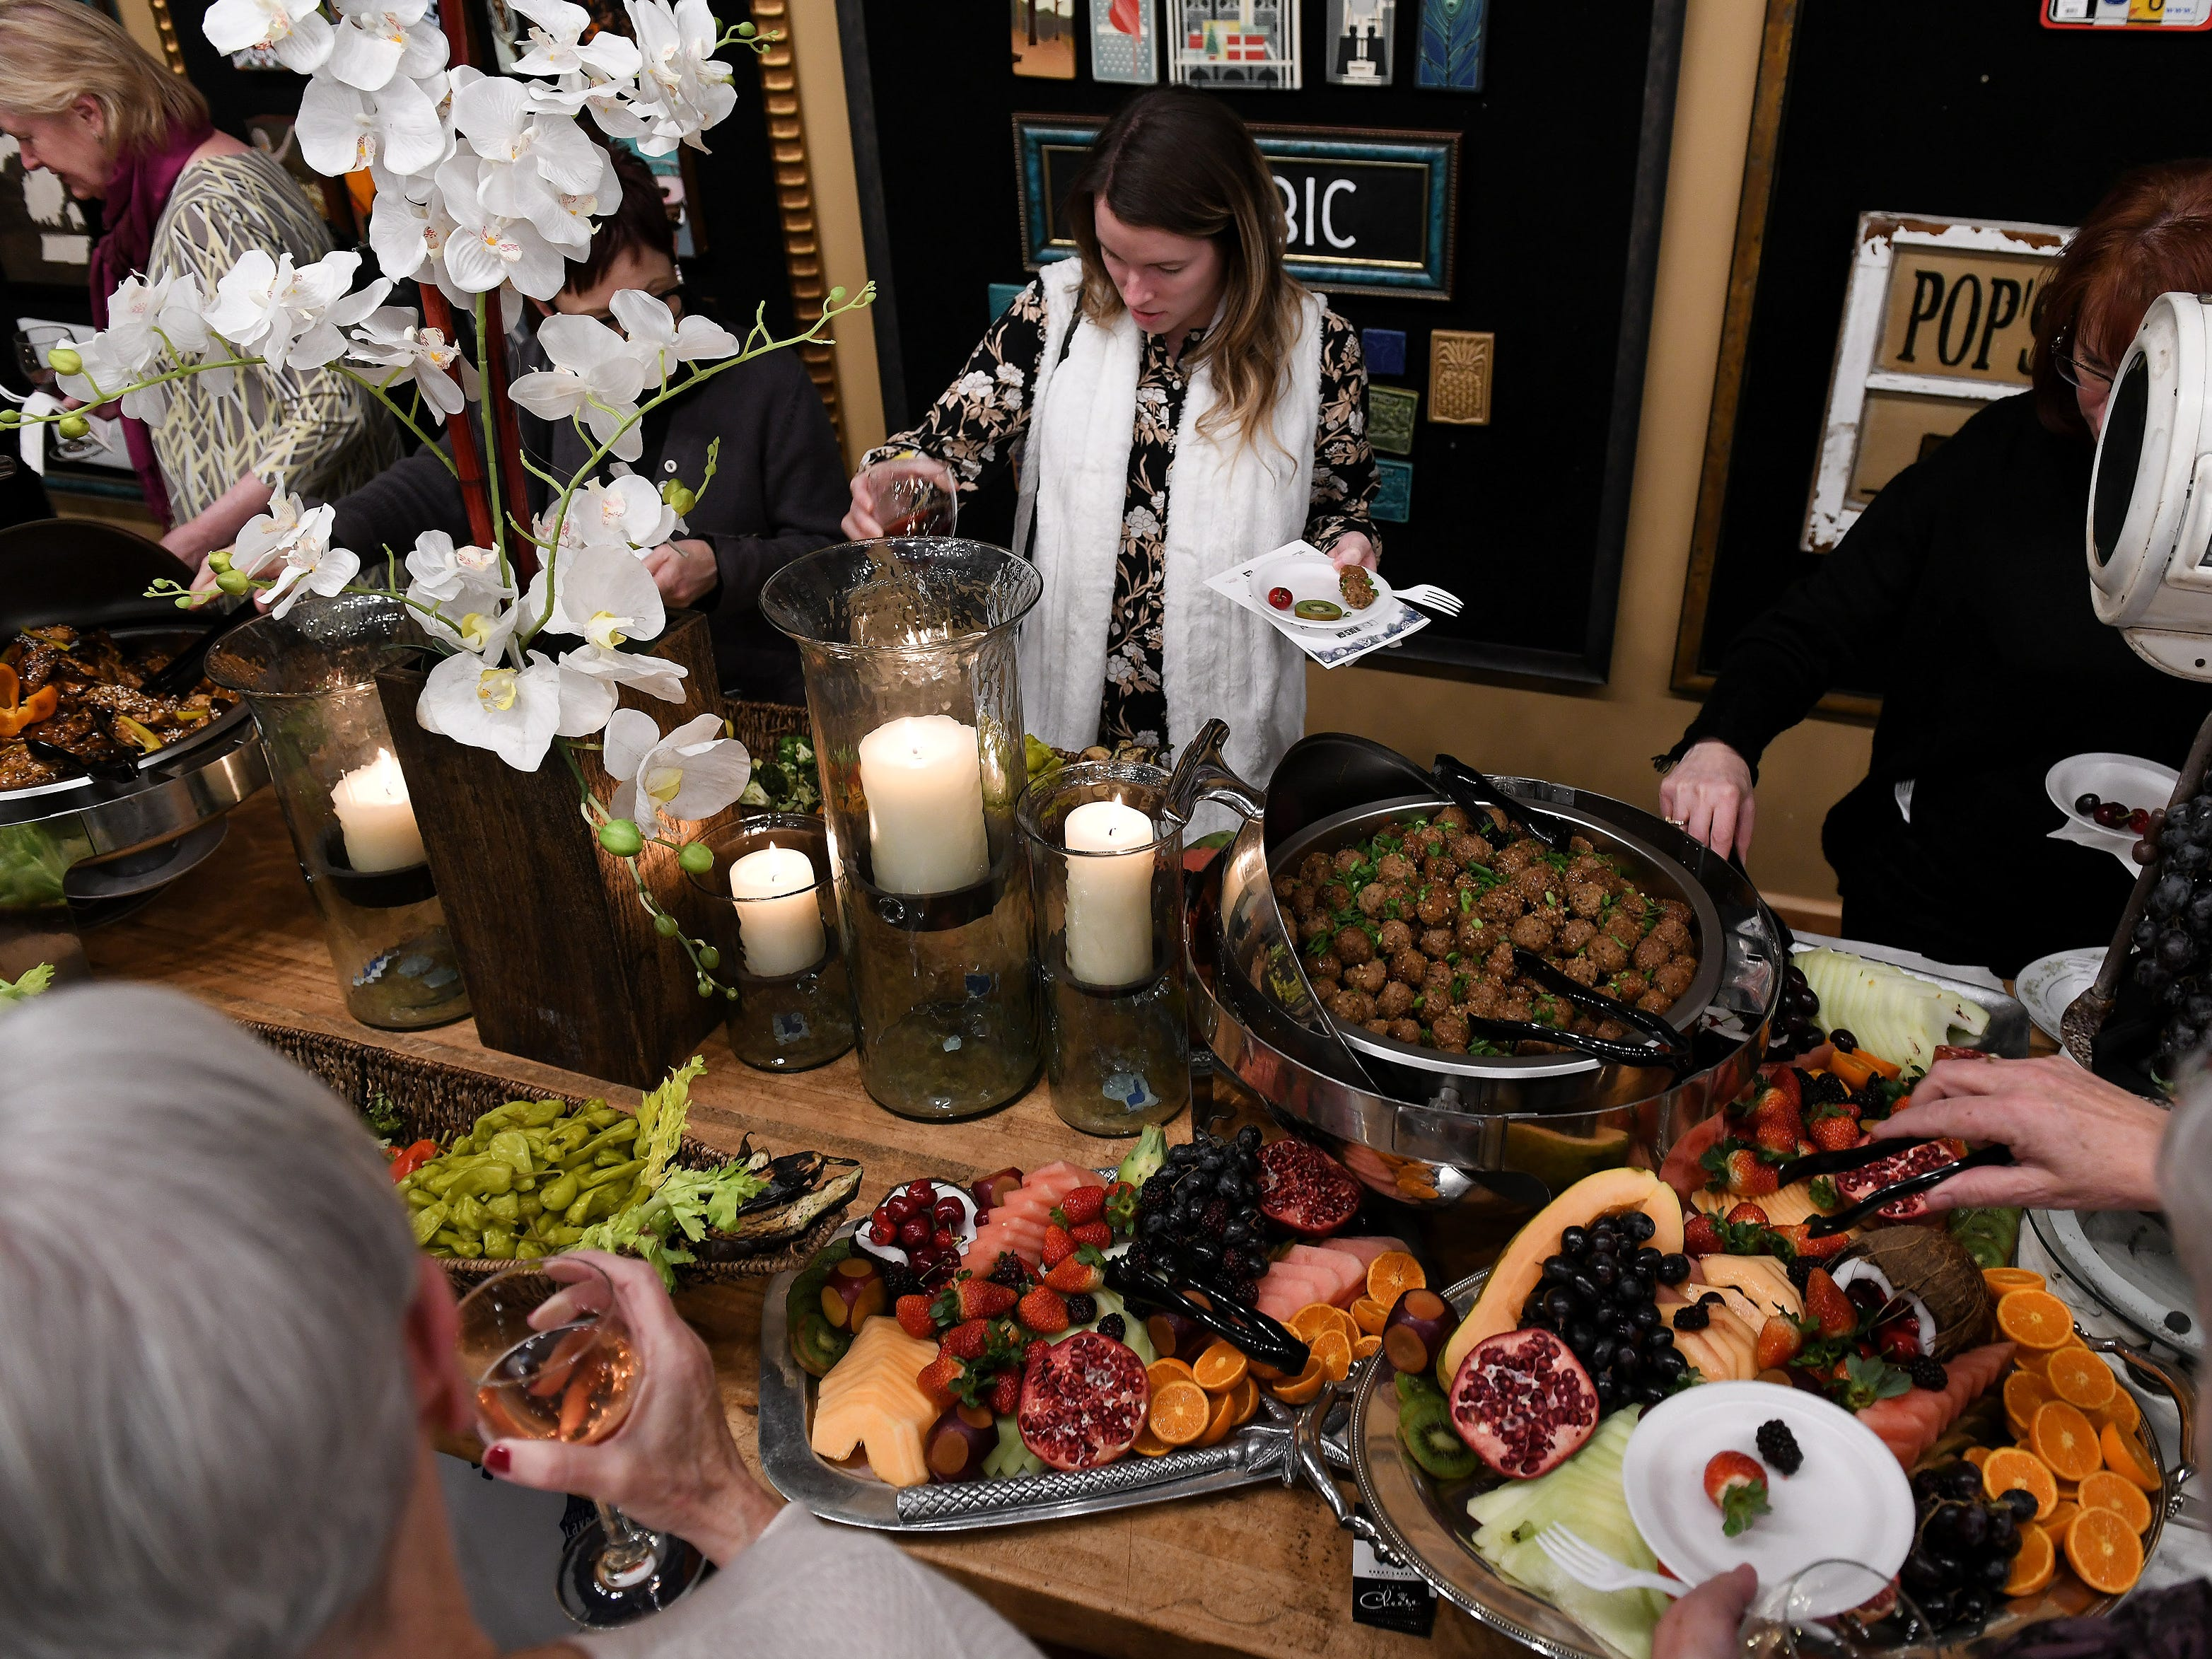 Attendees including Caitlin Bechard of Clarkson, center, partake in the appetizers prepared by Craft Creative Catering.